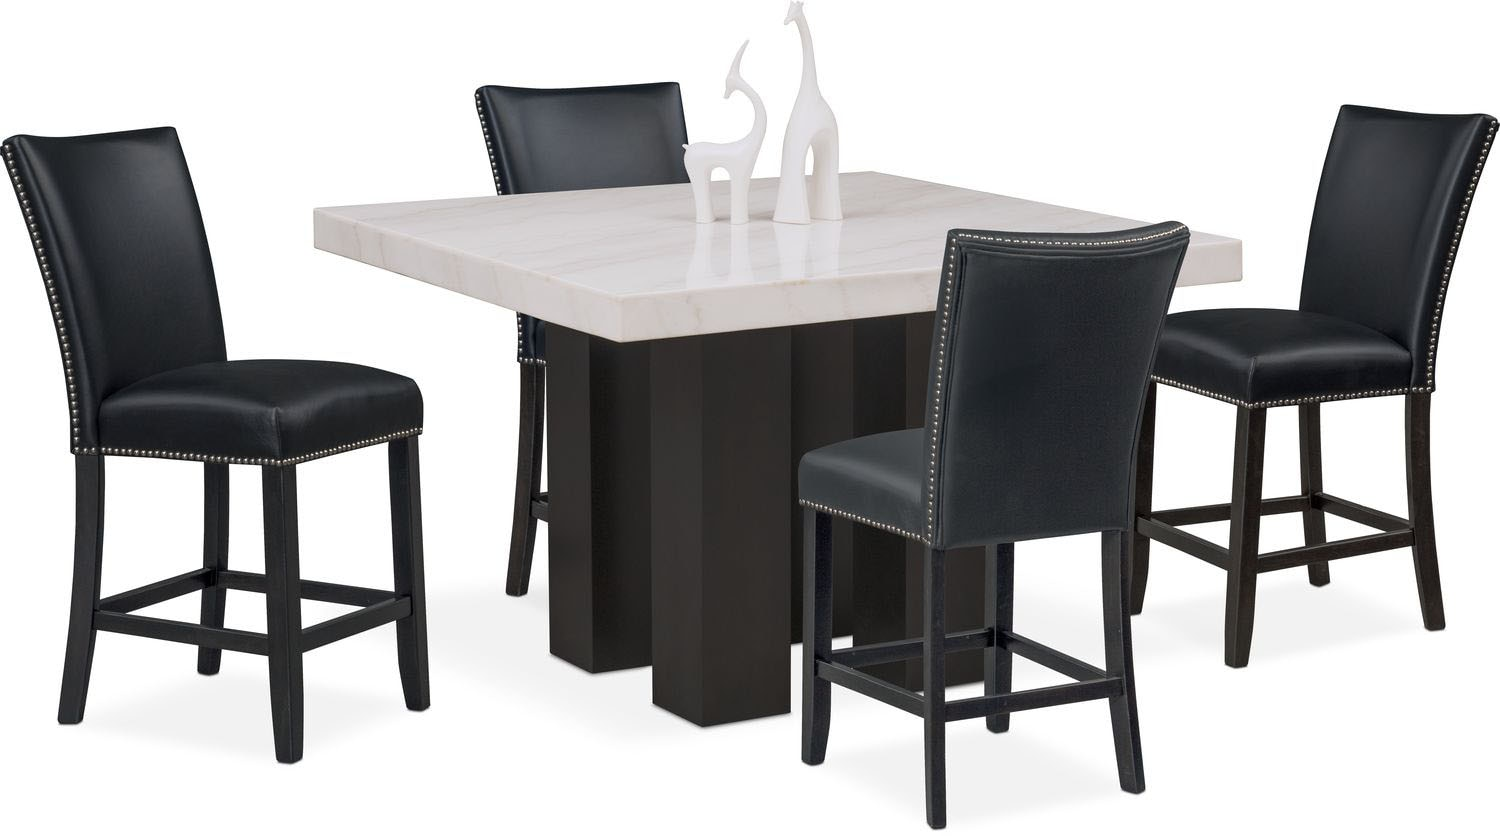 Dining Room Furniture   Artemis Counter Height Dining Table And 4  Upholstered Stools   Black